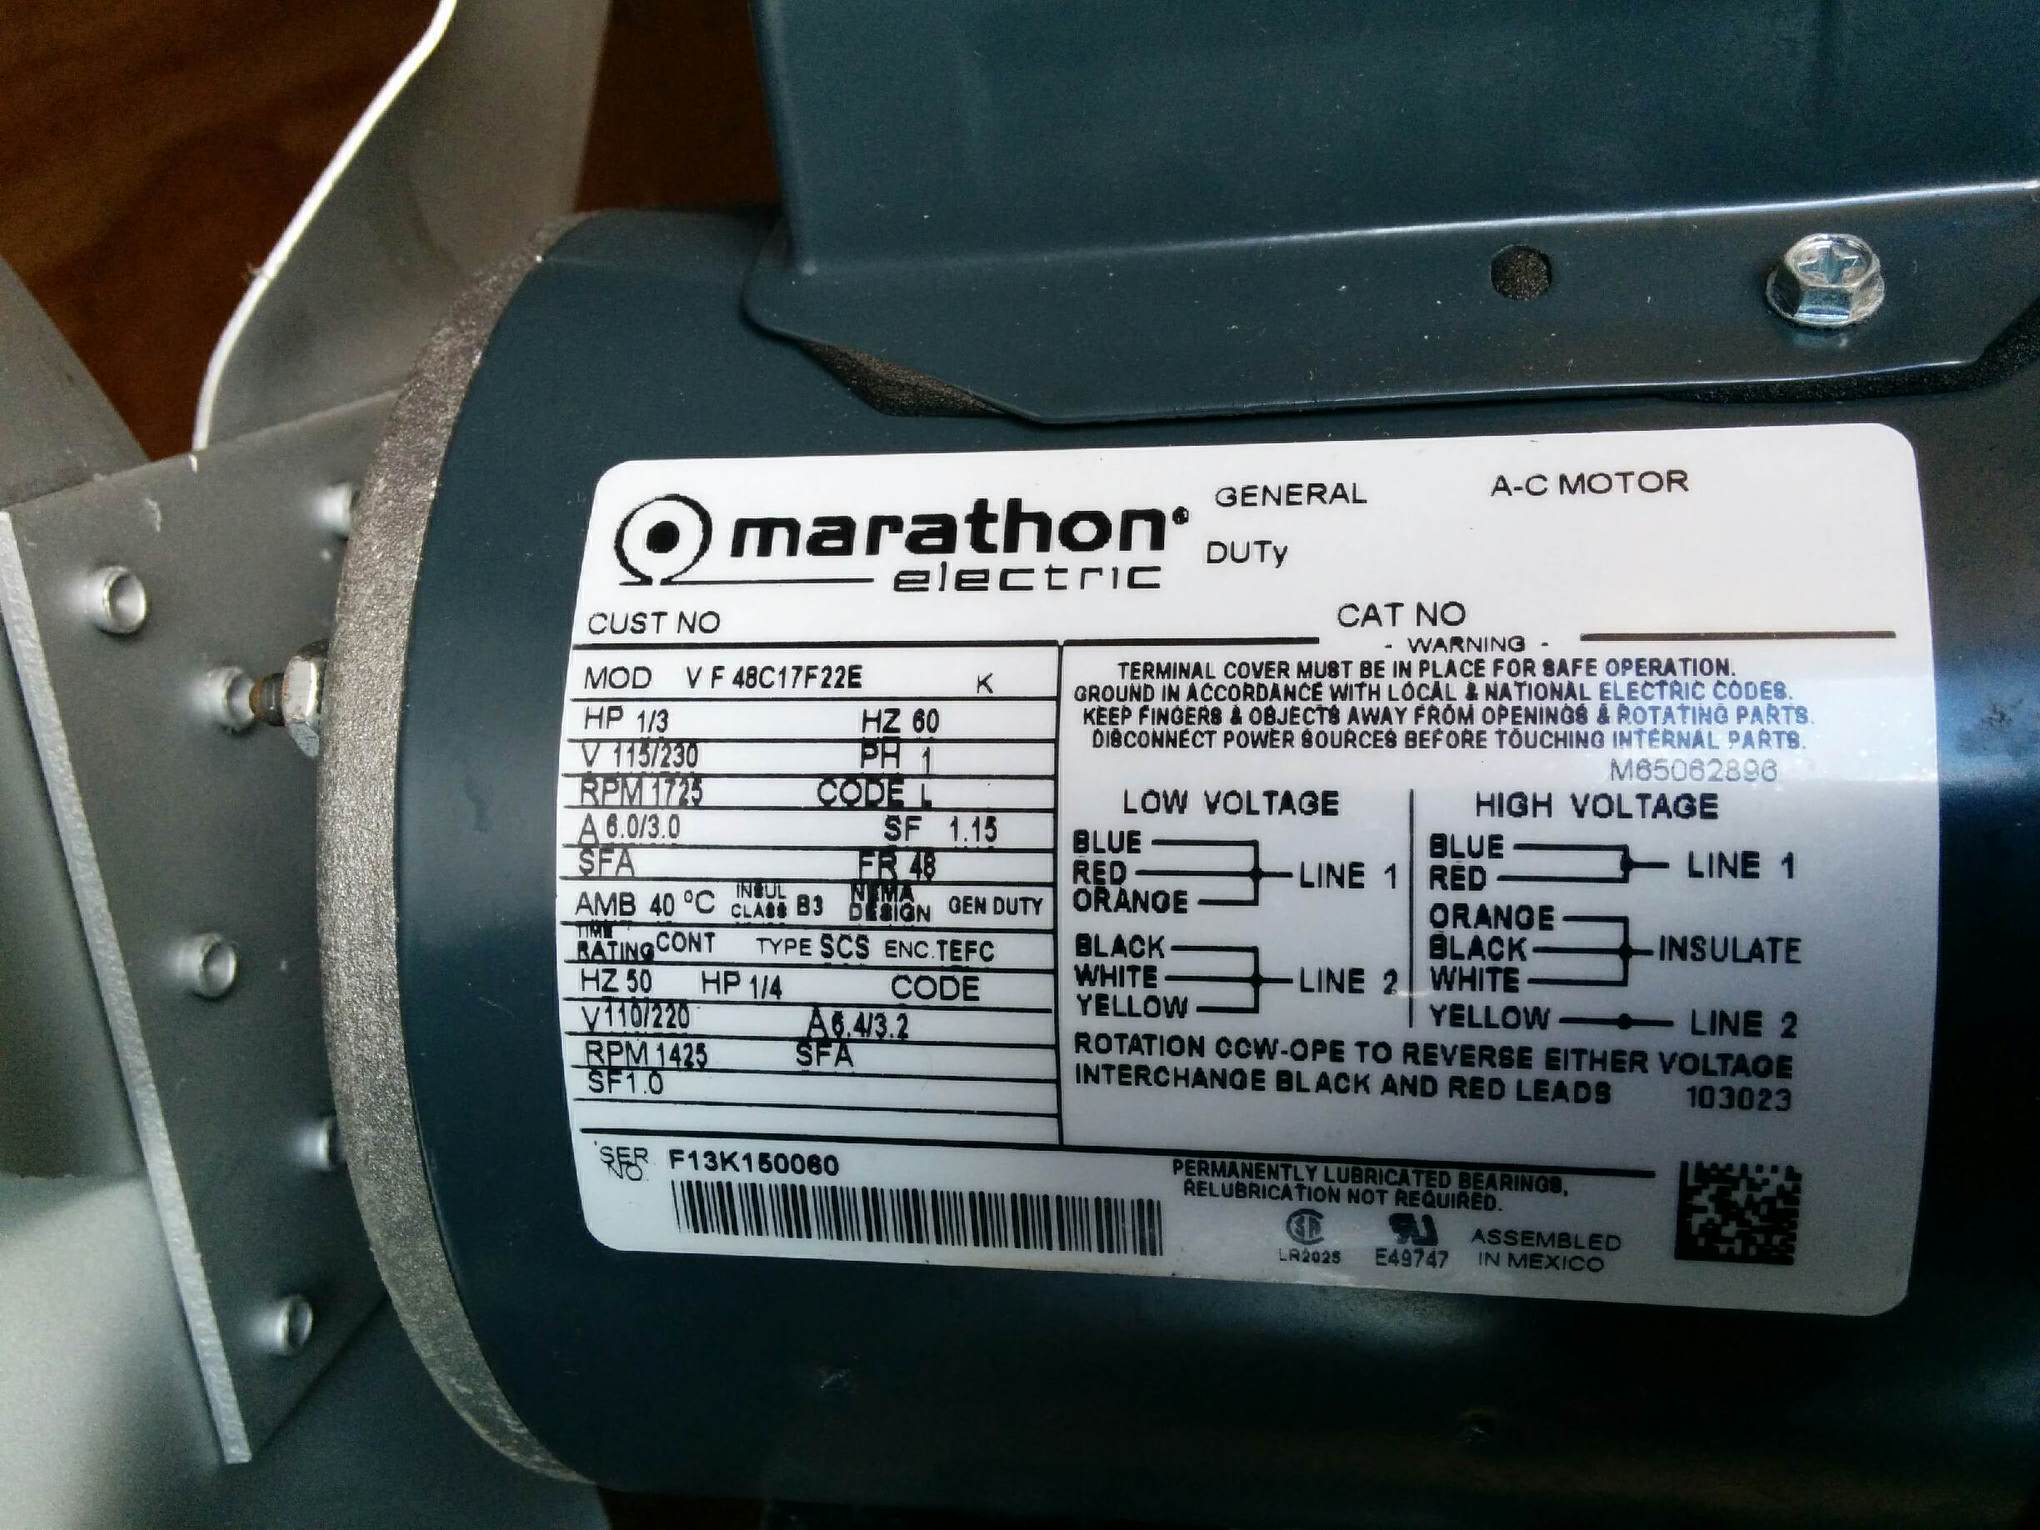 I have a marathon electric motor 1 3 hp i 39 m trying to for Marathon electric motors model numbers